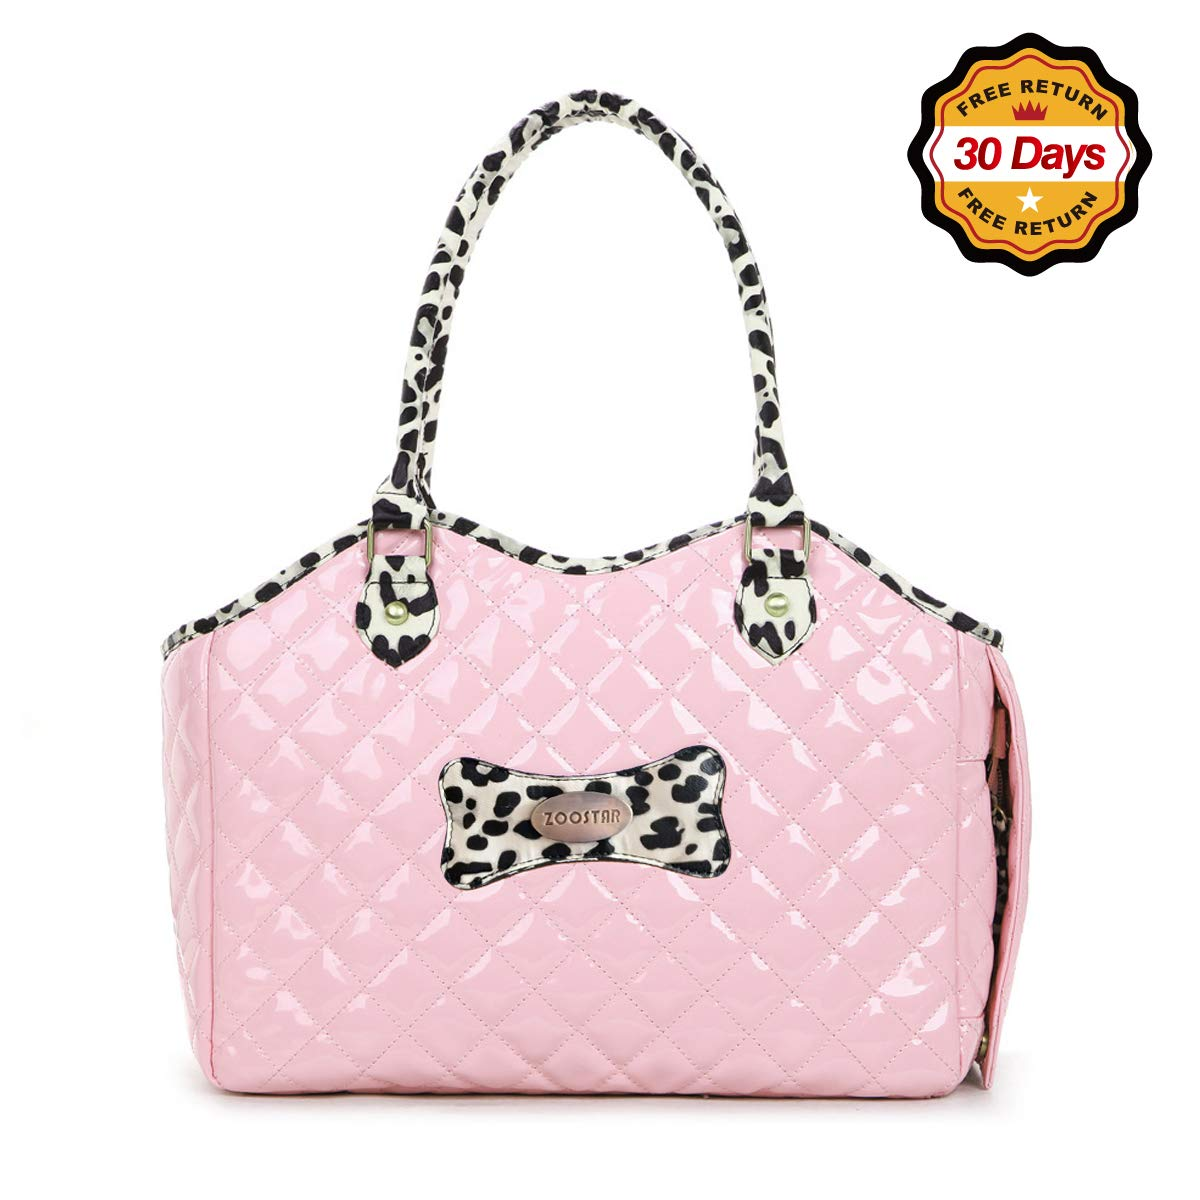 Dog Carrier Purse Pet Travel Bag Cat Portable Handbag,Soft Sided Tote with 2 Fleece Pads for Small Pets,Come with a Pet Comb,Up to 15lbs,Go Traveling Hiking Shopping with Your Doggy (Pink) by ZOOSTAR